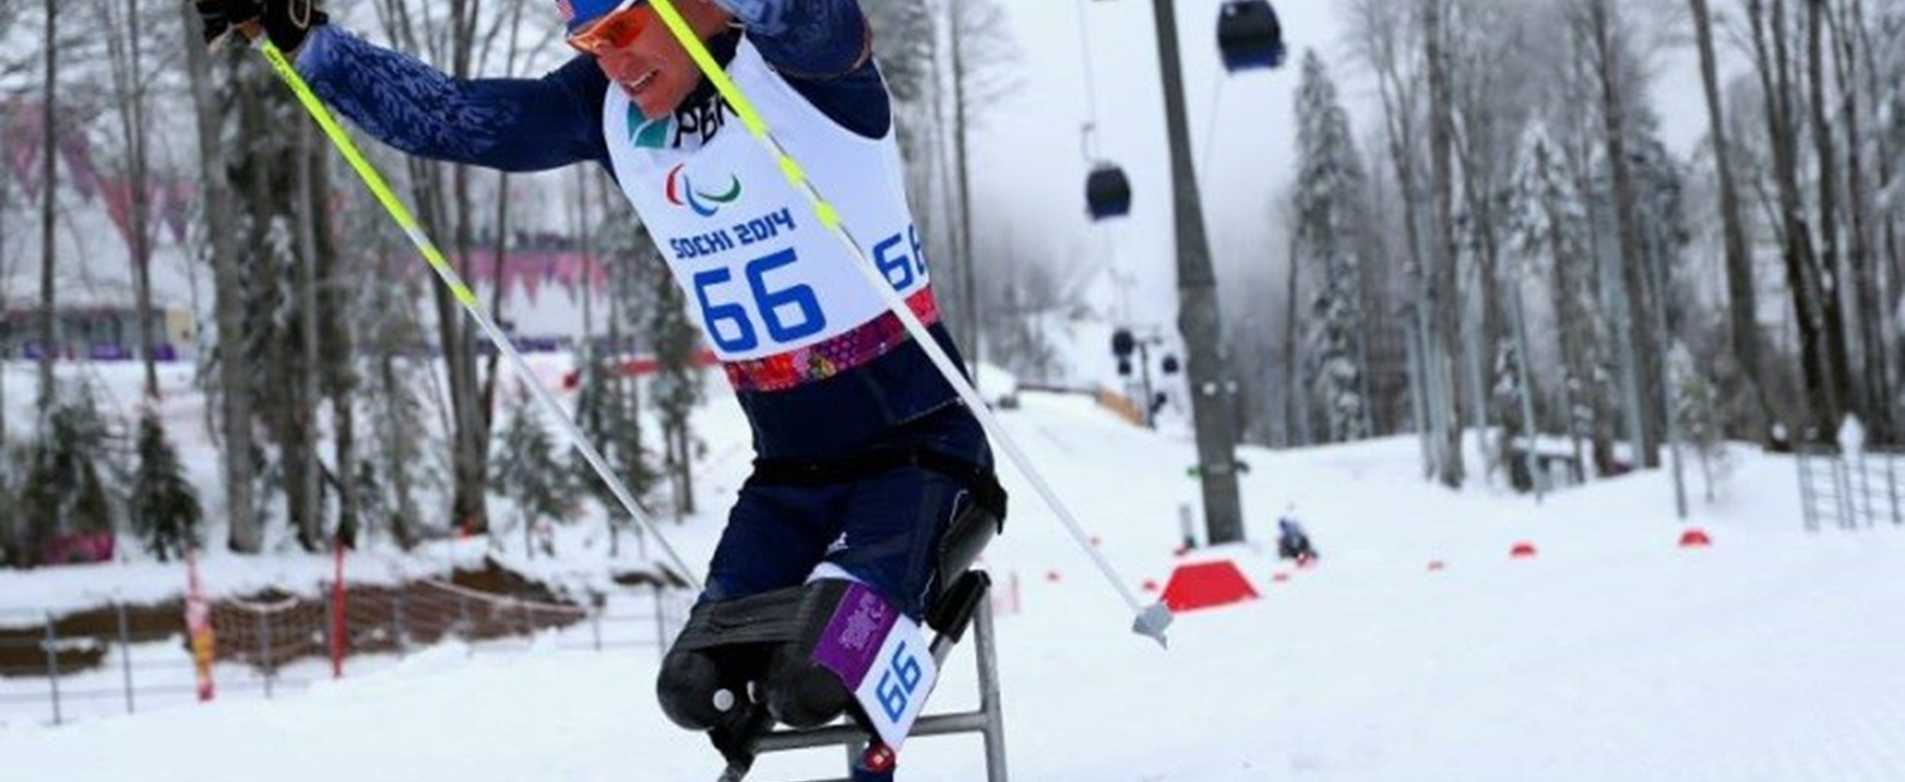 2015 International Paralympic Nordic Skiing World Championships